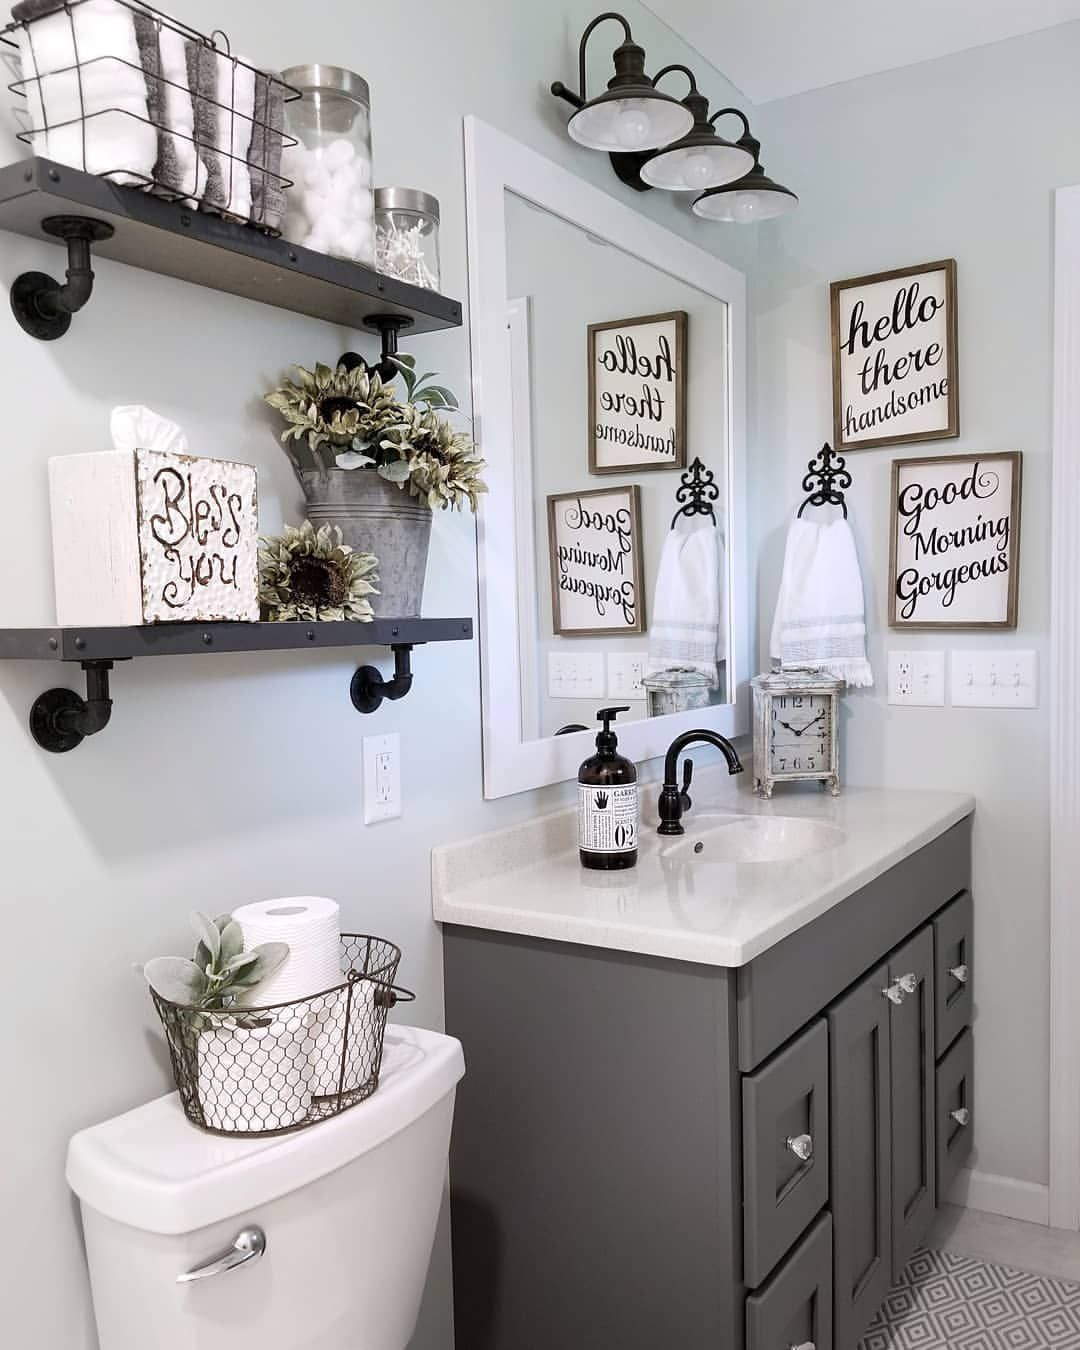 Bathroom Remodeling Ideas Browse Our Photo Gallery To Find Ideas As Well As The Inspiration You Small Bathroom Decor Restroom Decor Farmhouse Bathroom Decor